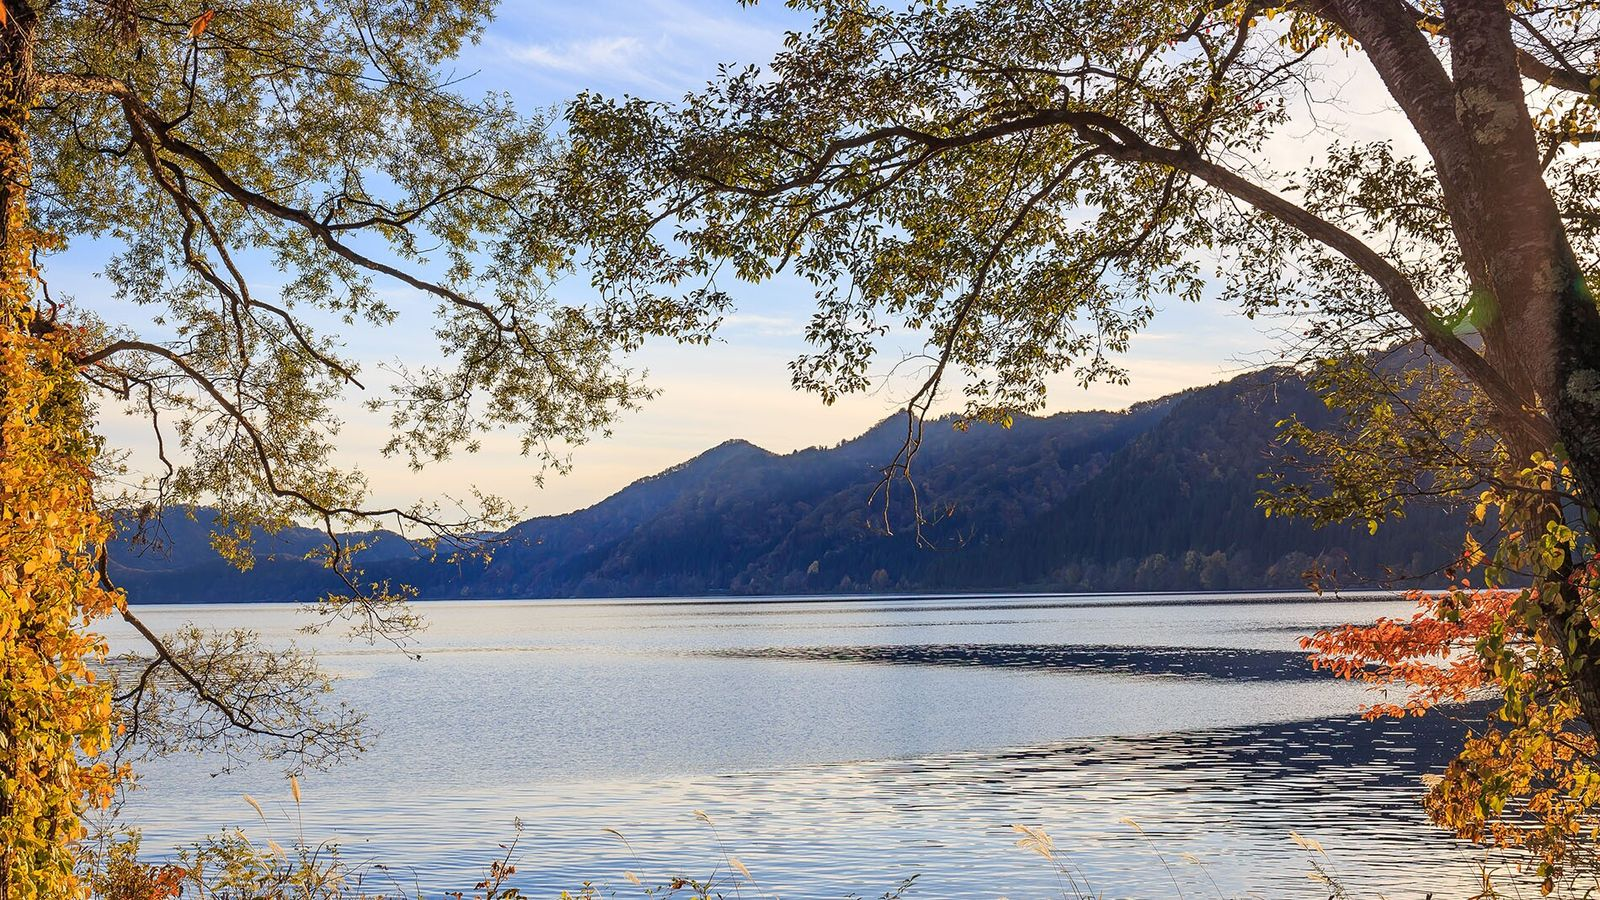 Lake Tazawa is Japan's deepest body of water, plunging to an astonishing 423 metres.